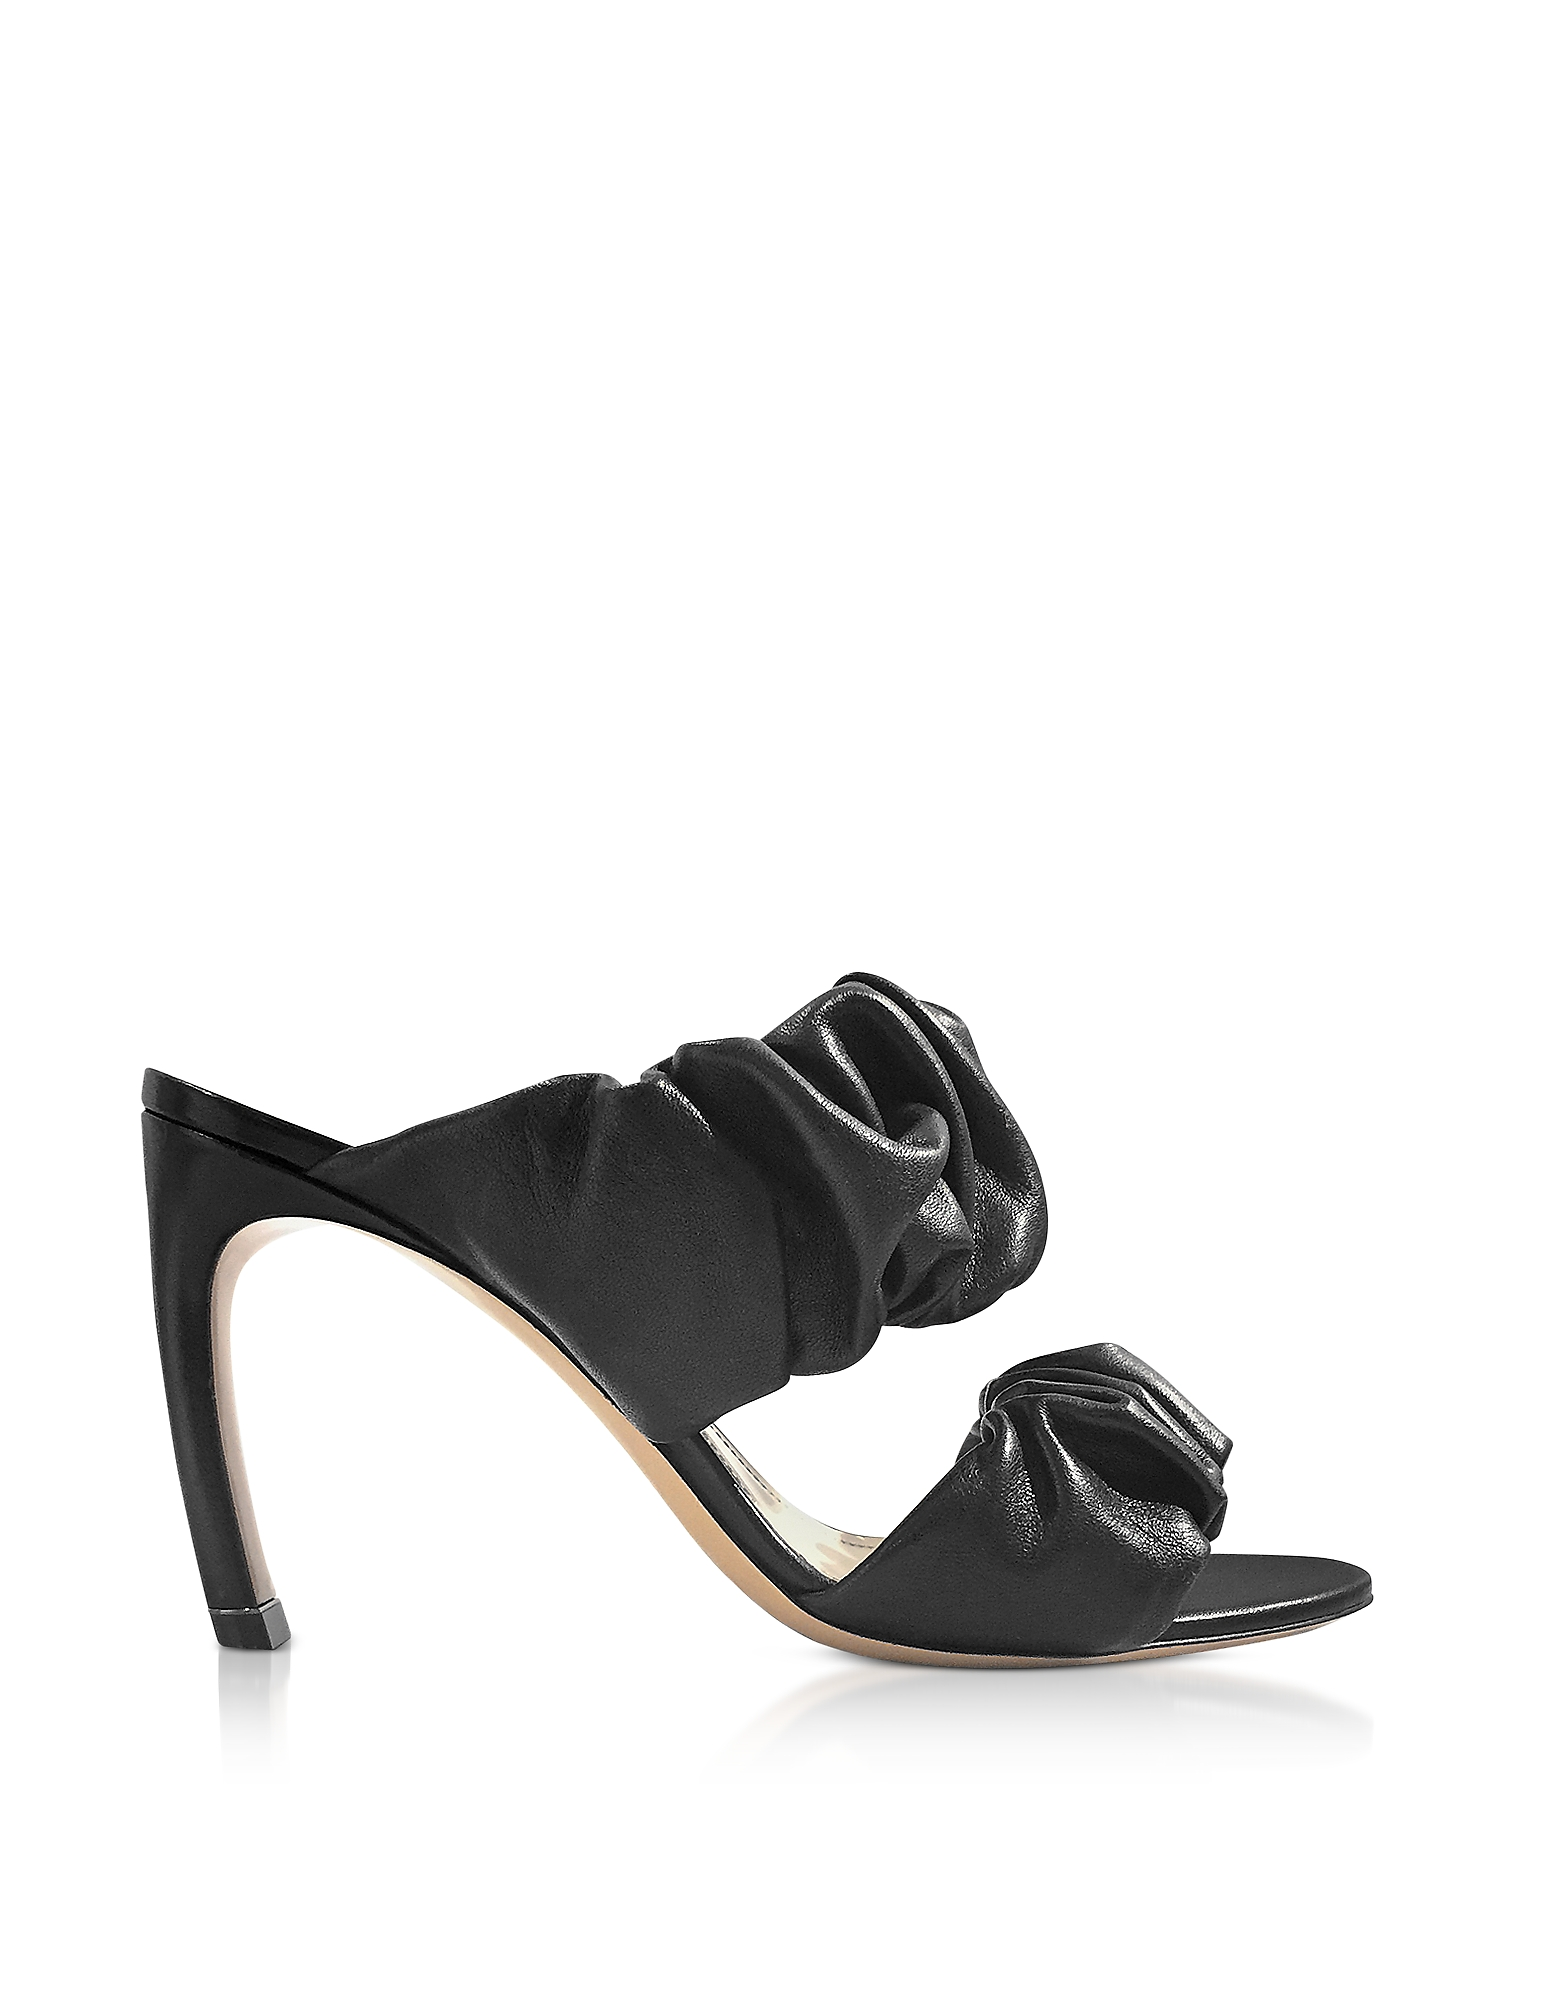 Nicholas Kirkwood Shoes, 90mm Black Nappa Courtney Mules